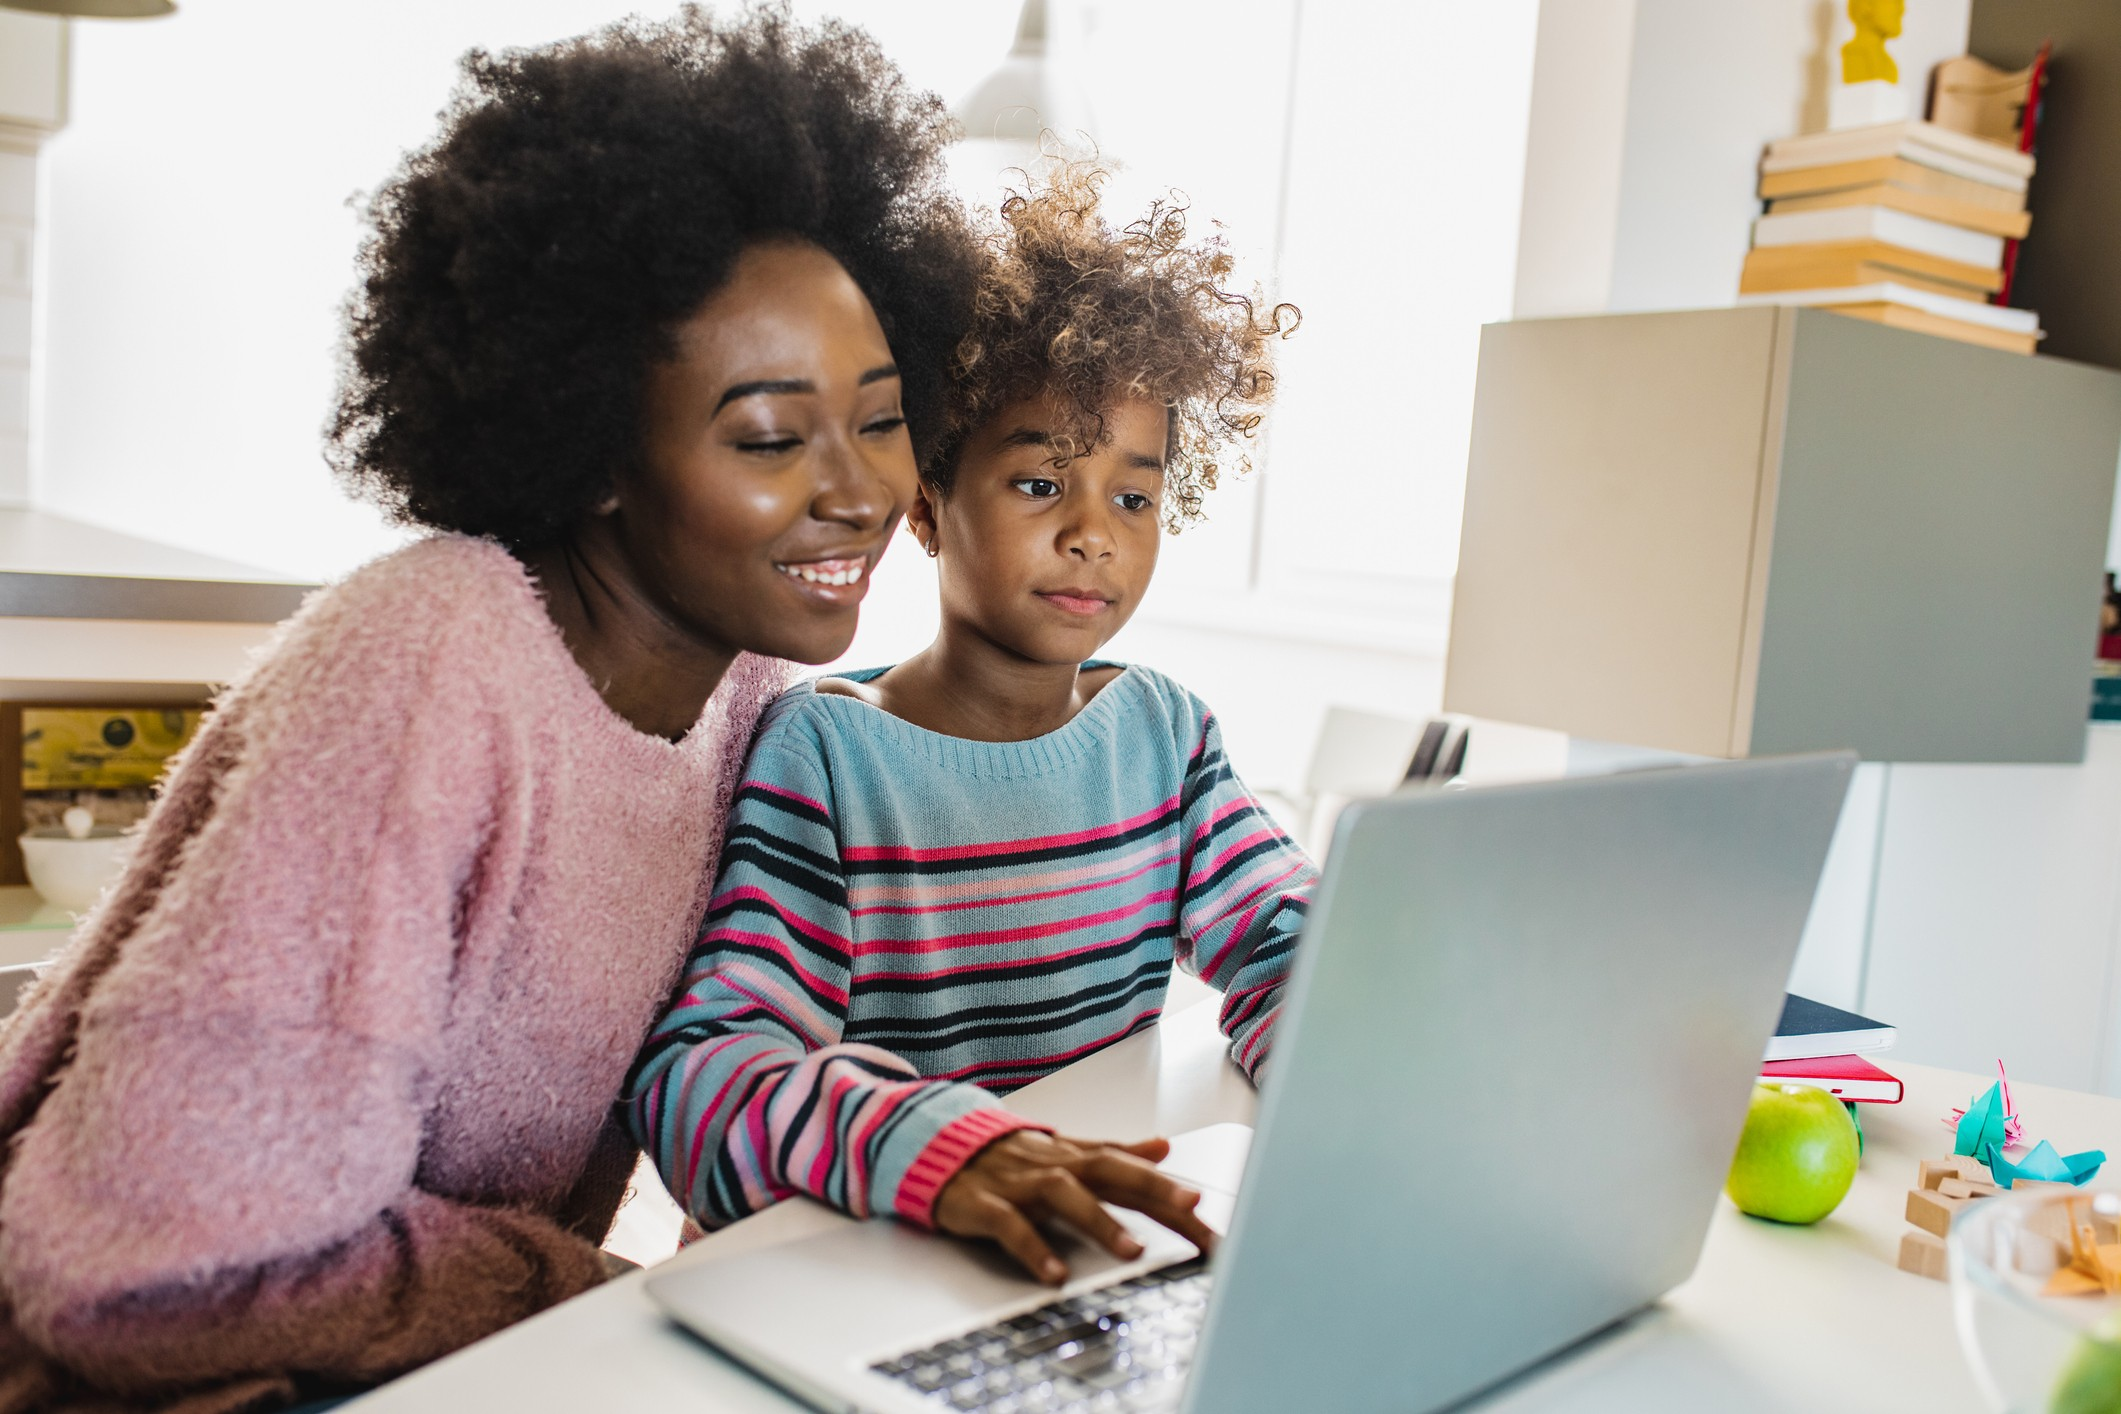 A mother and daughter sitting at a laptop together